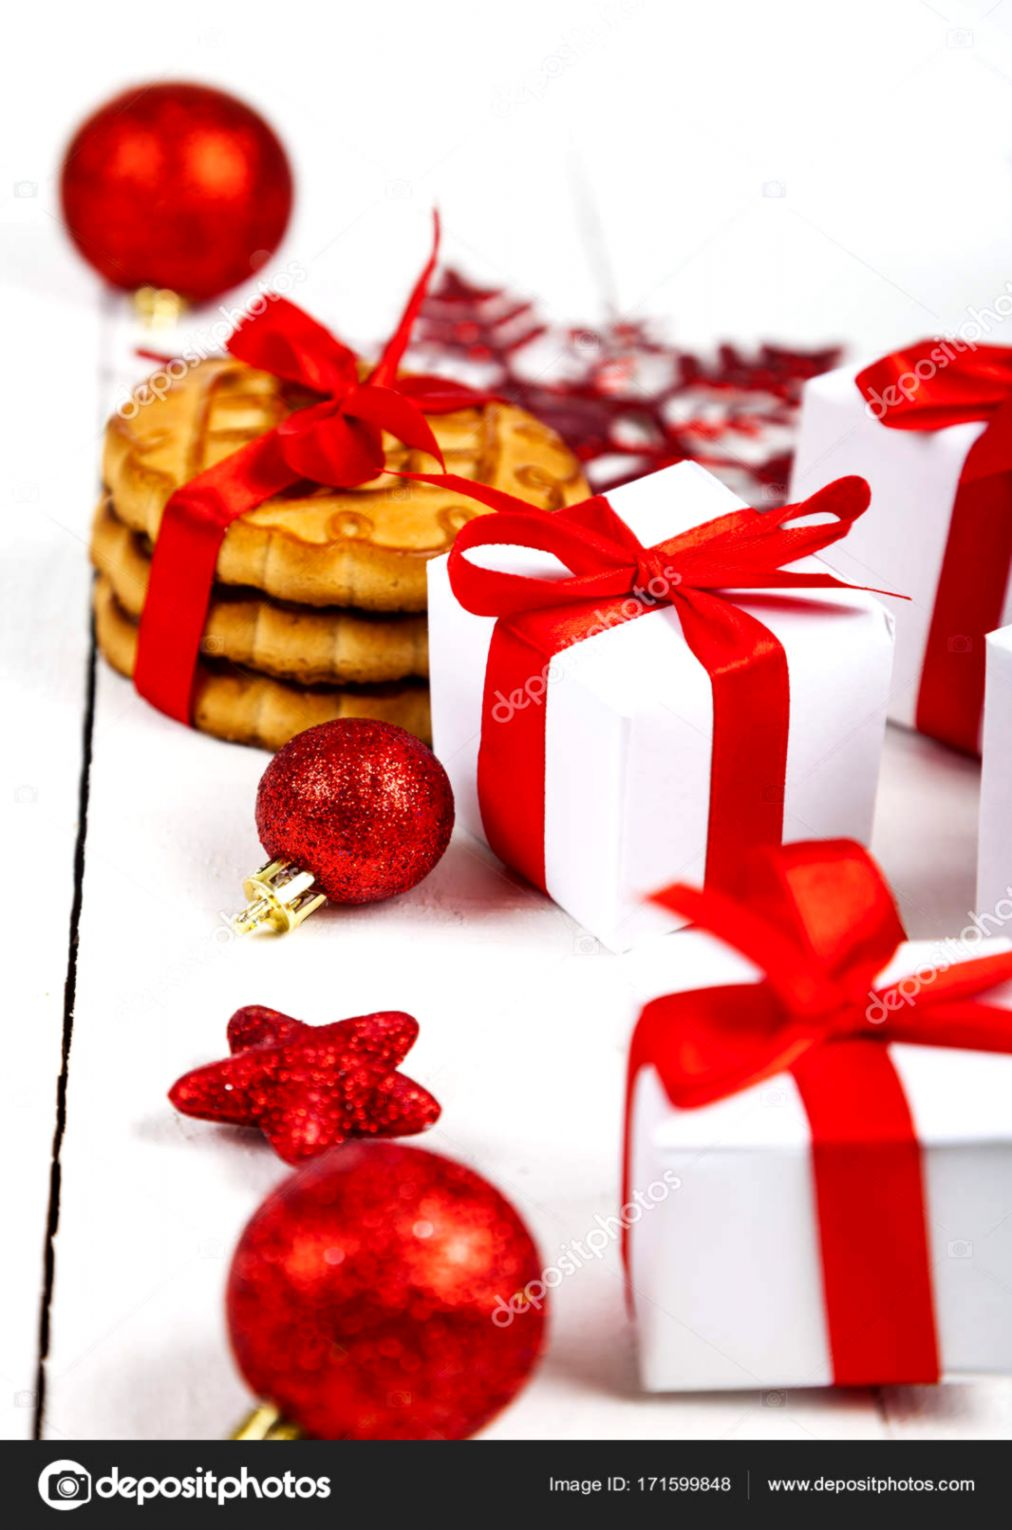 Cookies Ribbon Box Gift Christmas Hd Wallpaper Wallpapers